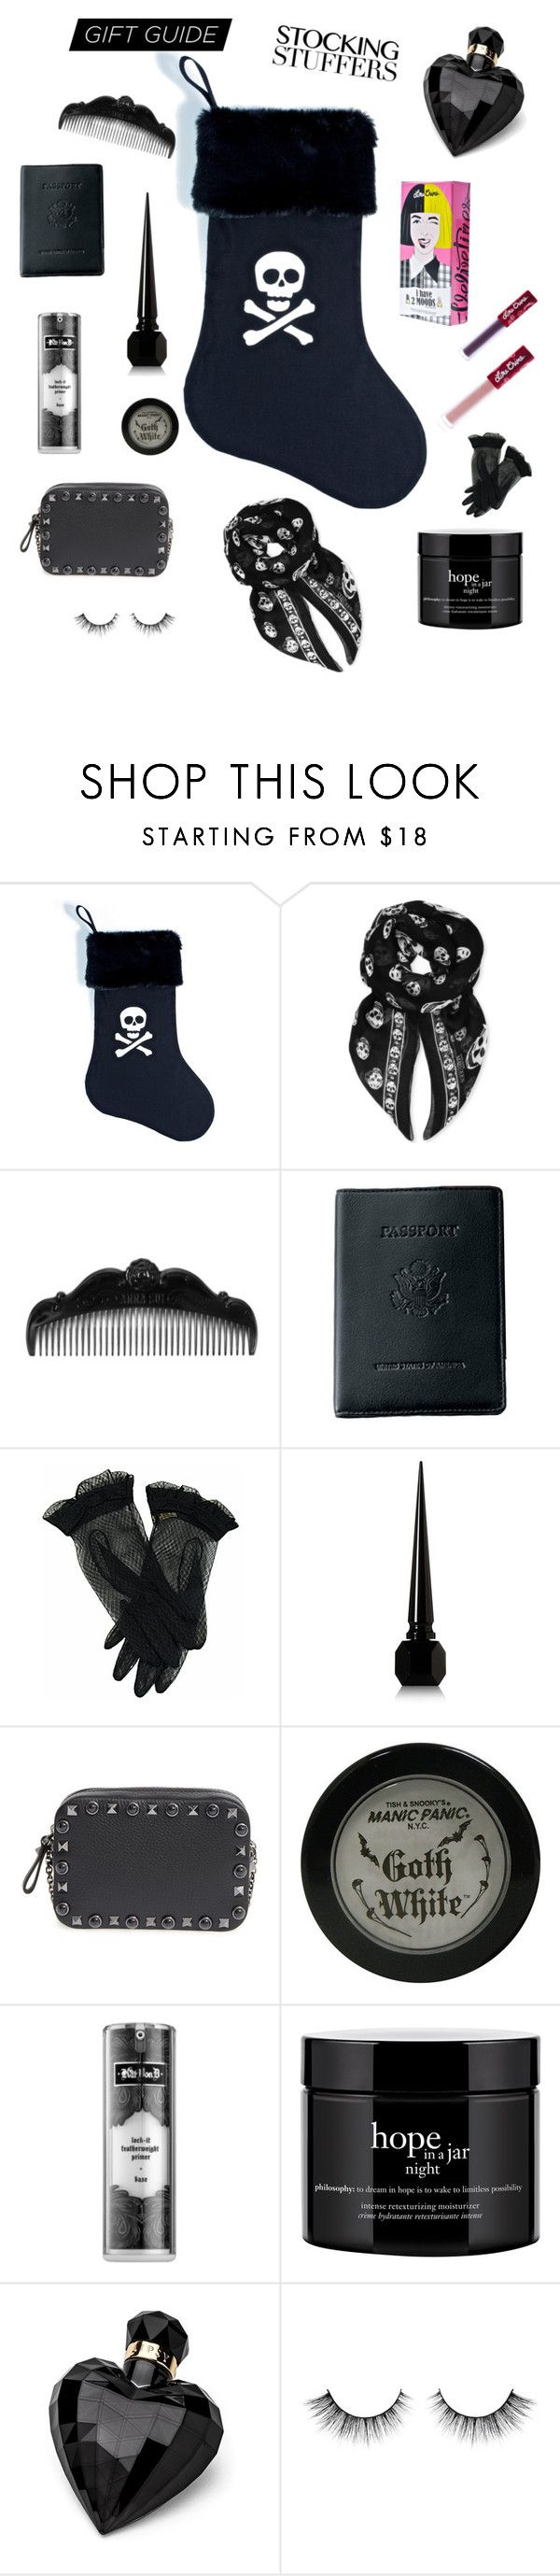 """Stoking stuffers"" by wittethefox ❤ liked on Polyvore featuring Working Class Punx, Alexander McQueen, Anna Sui, Royce Leather, Christian Louboutin, Valentino, Manic Panic NYC, Kat Von D, philosophy and Lipsy"